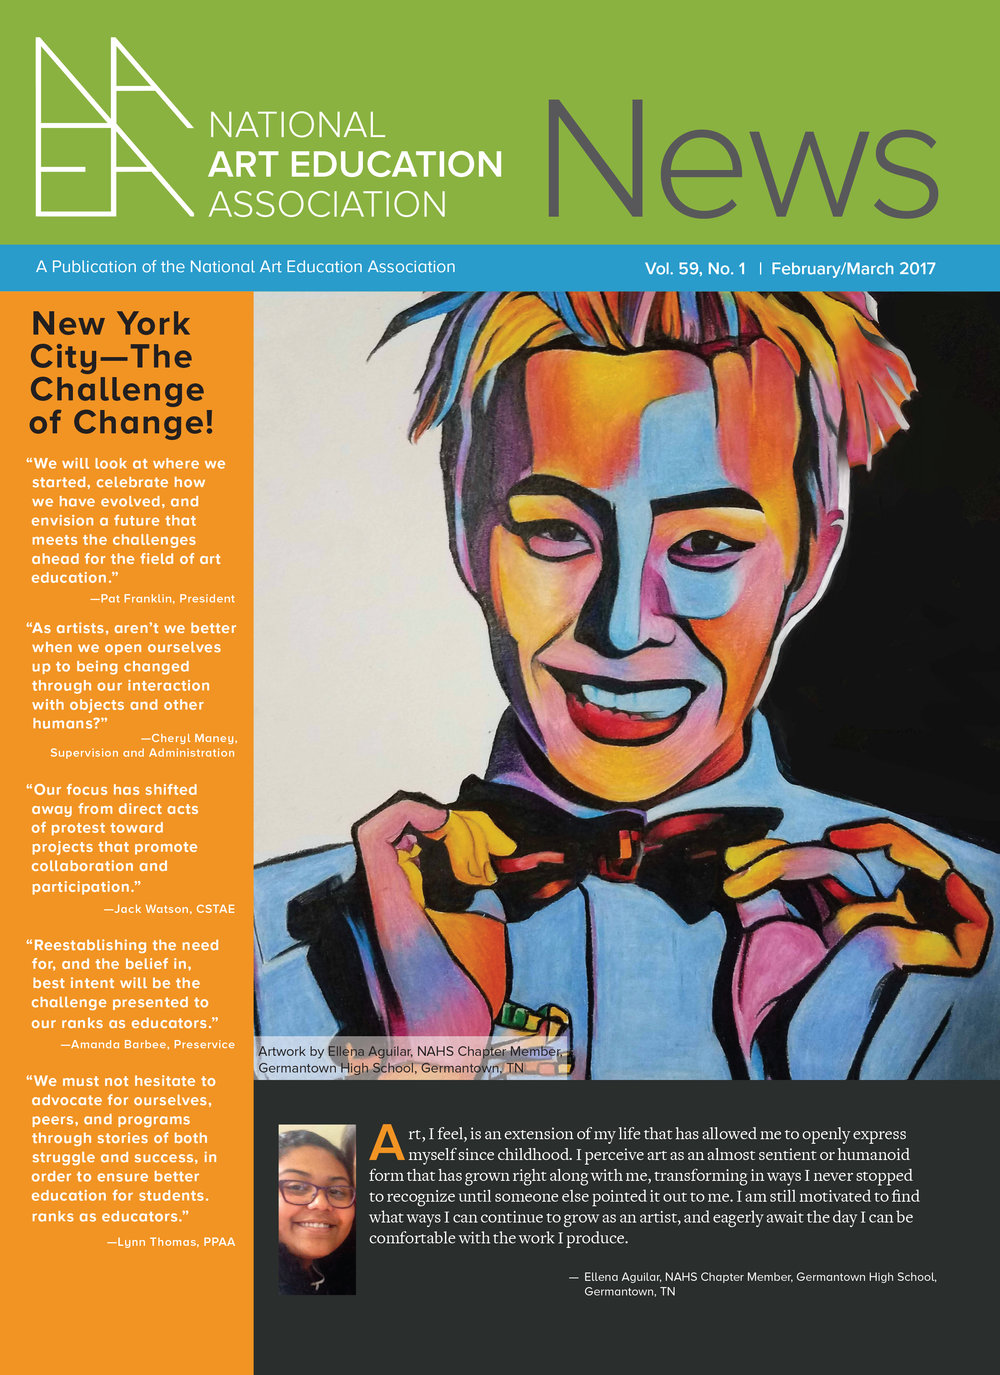 NAEA News, Cover (National Art Education Association)